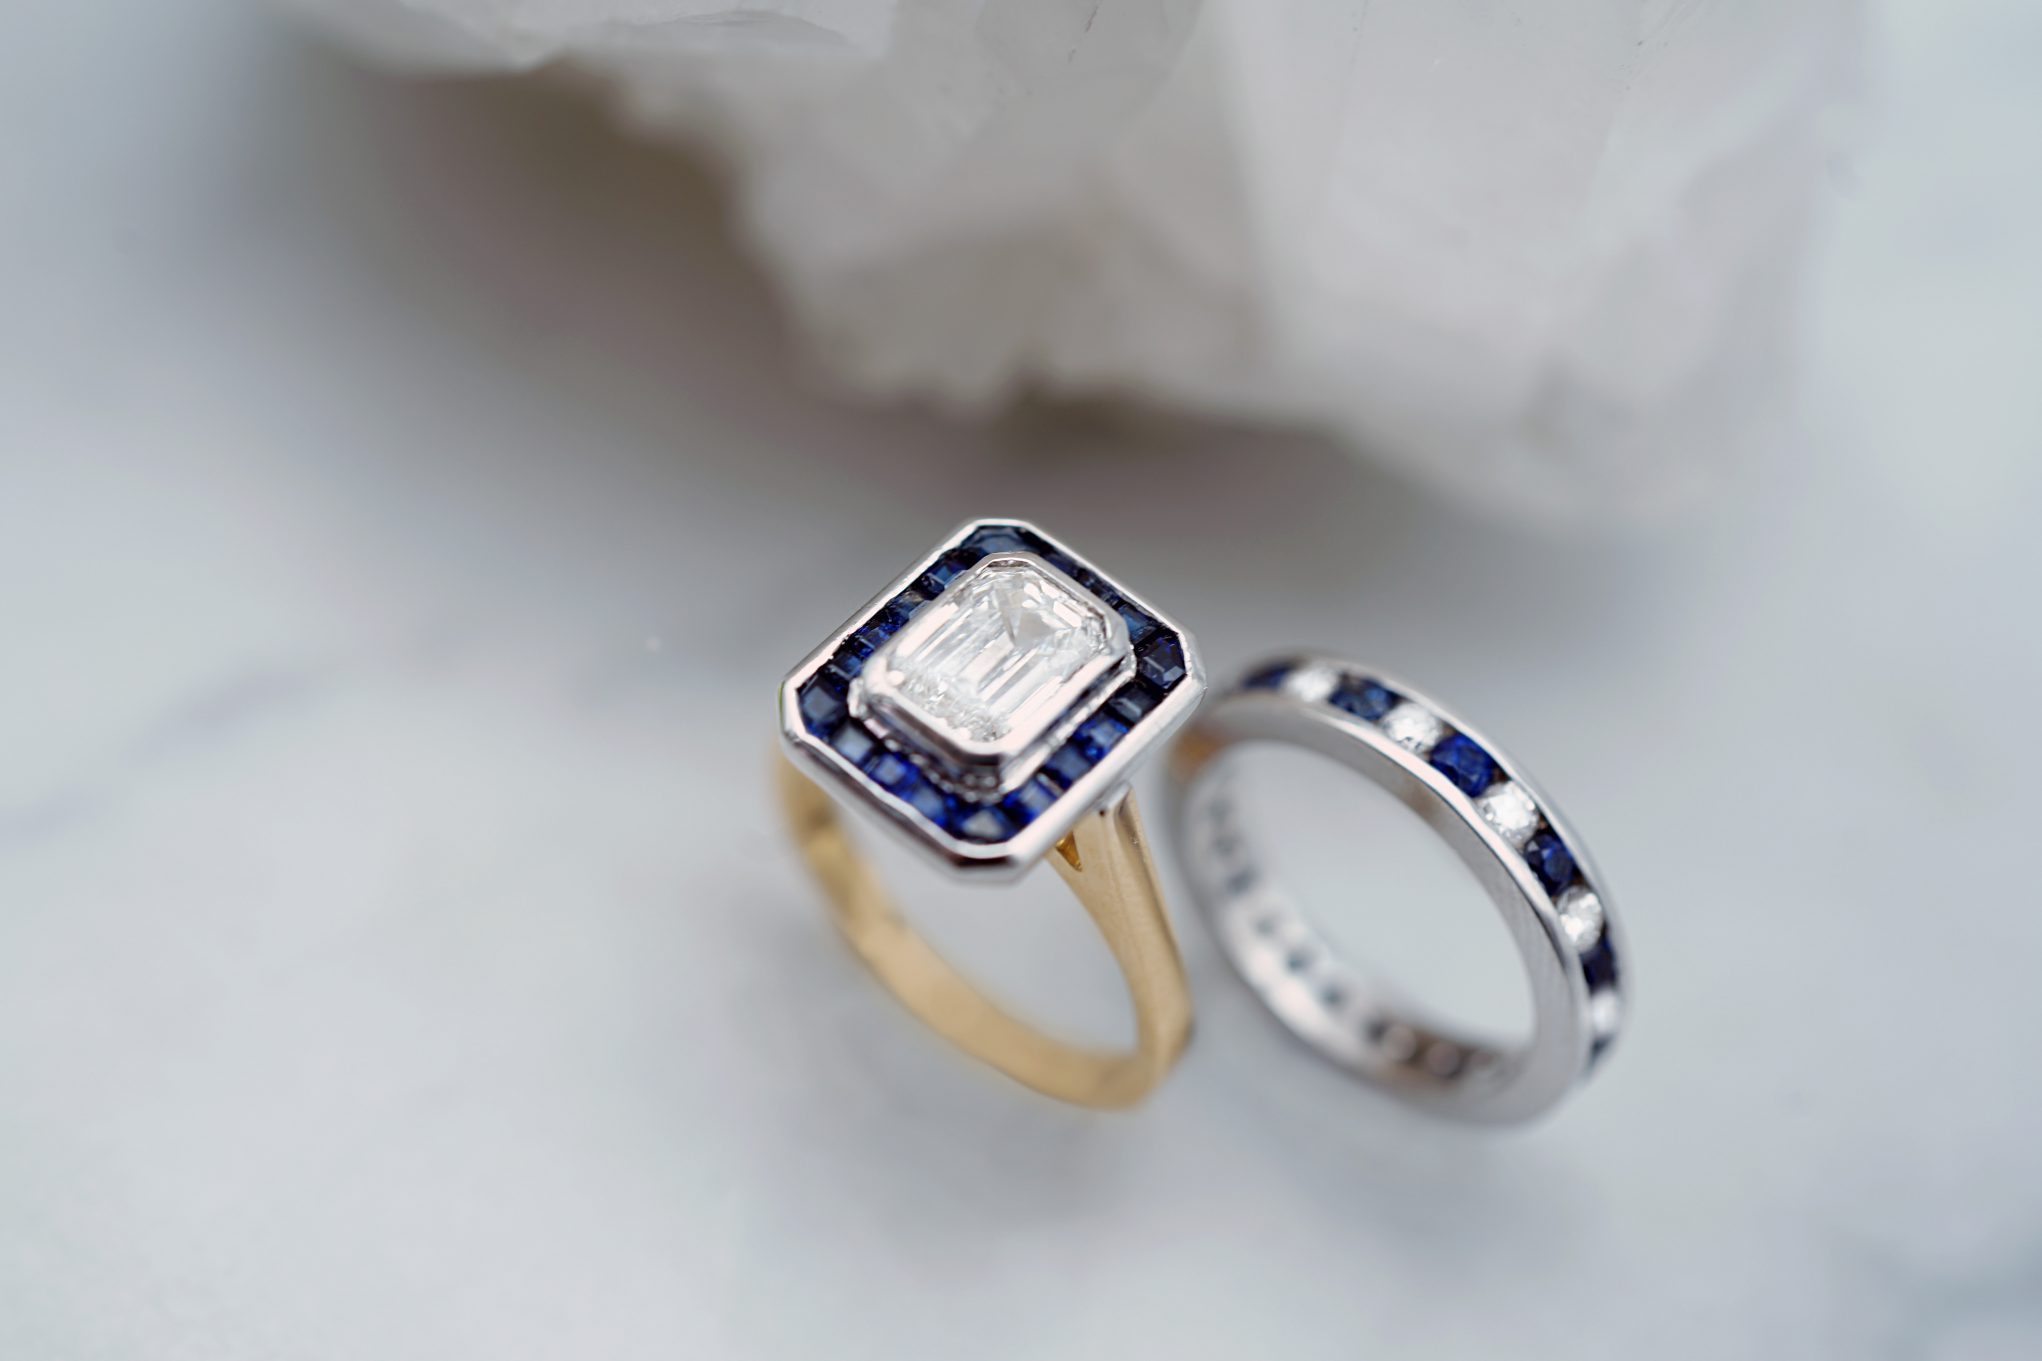 Bridal Jewelry - Wedding Bands & Engagement Rings in Melbourne